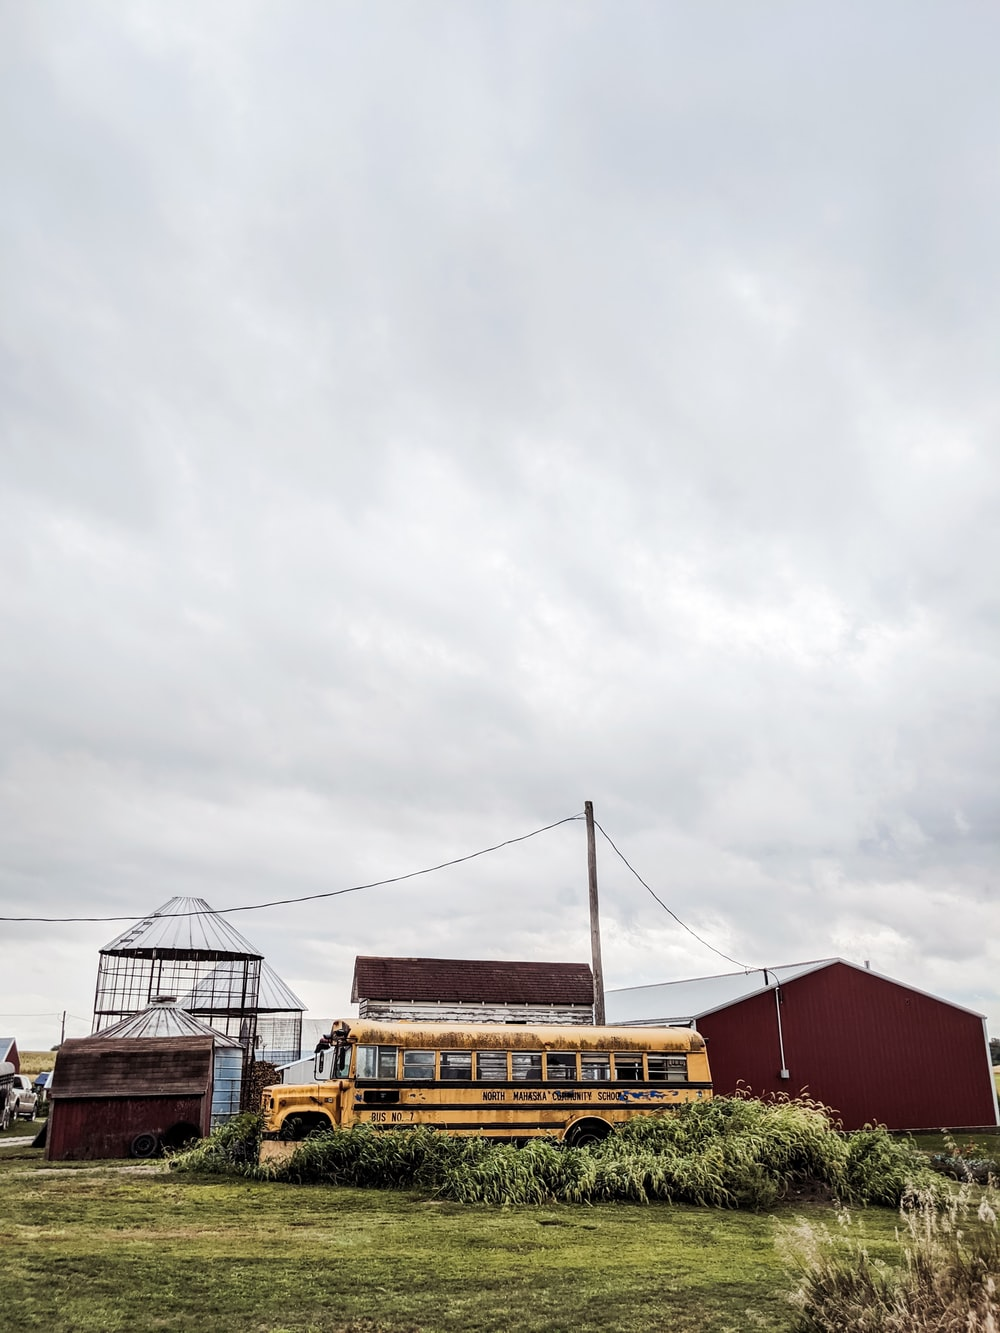 yellow and black bus on road under white clouds during daytime